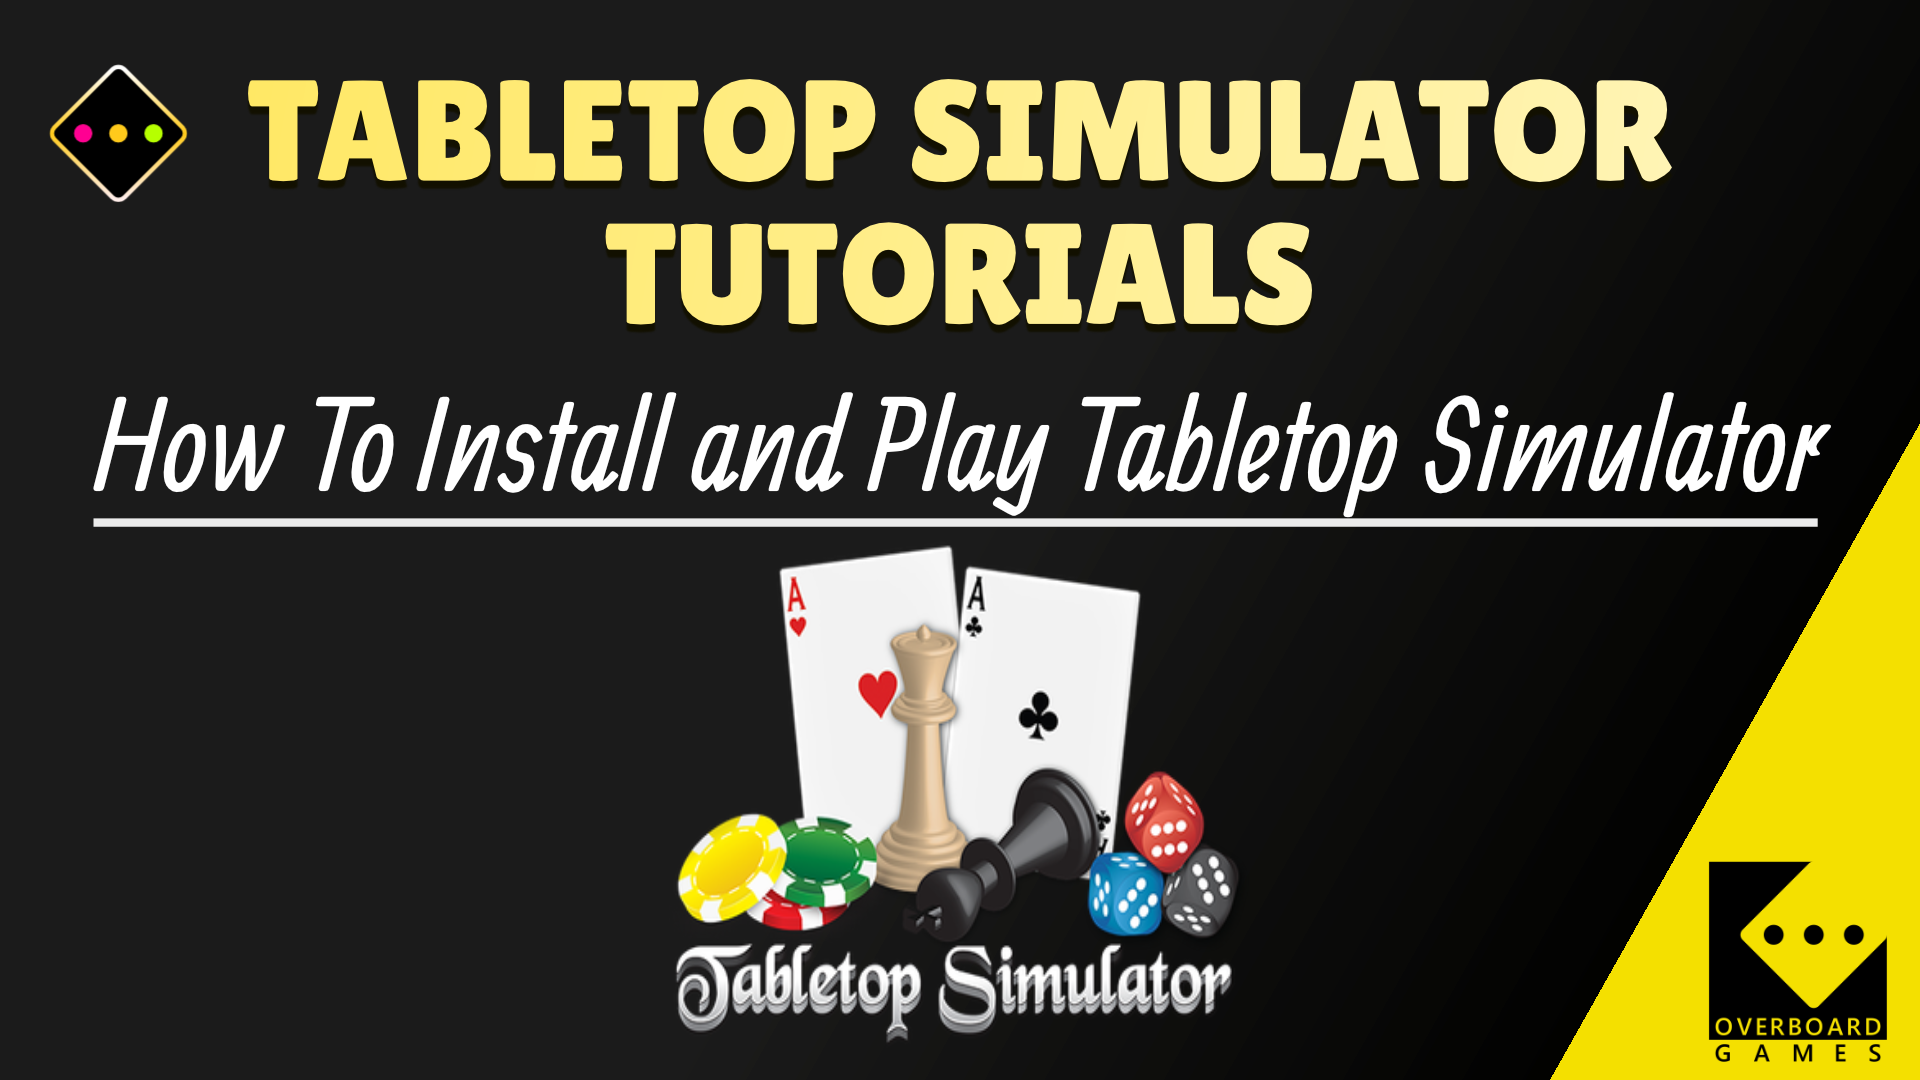 Tabeletop SImulator